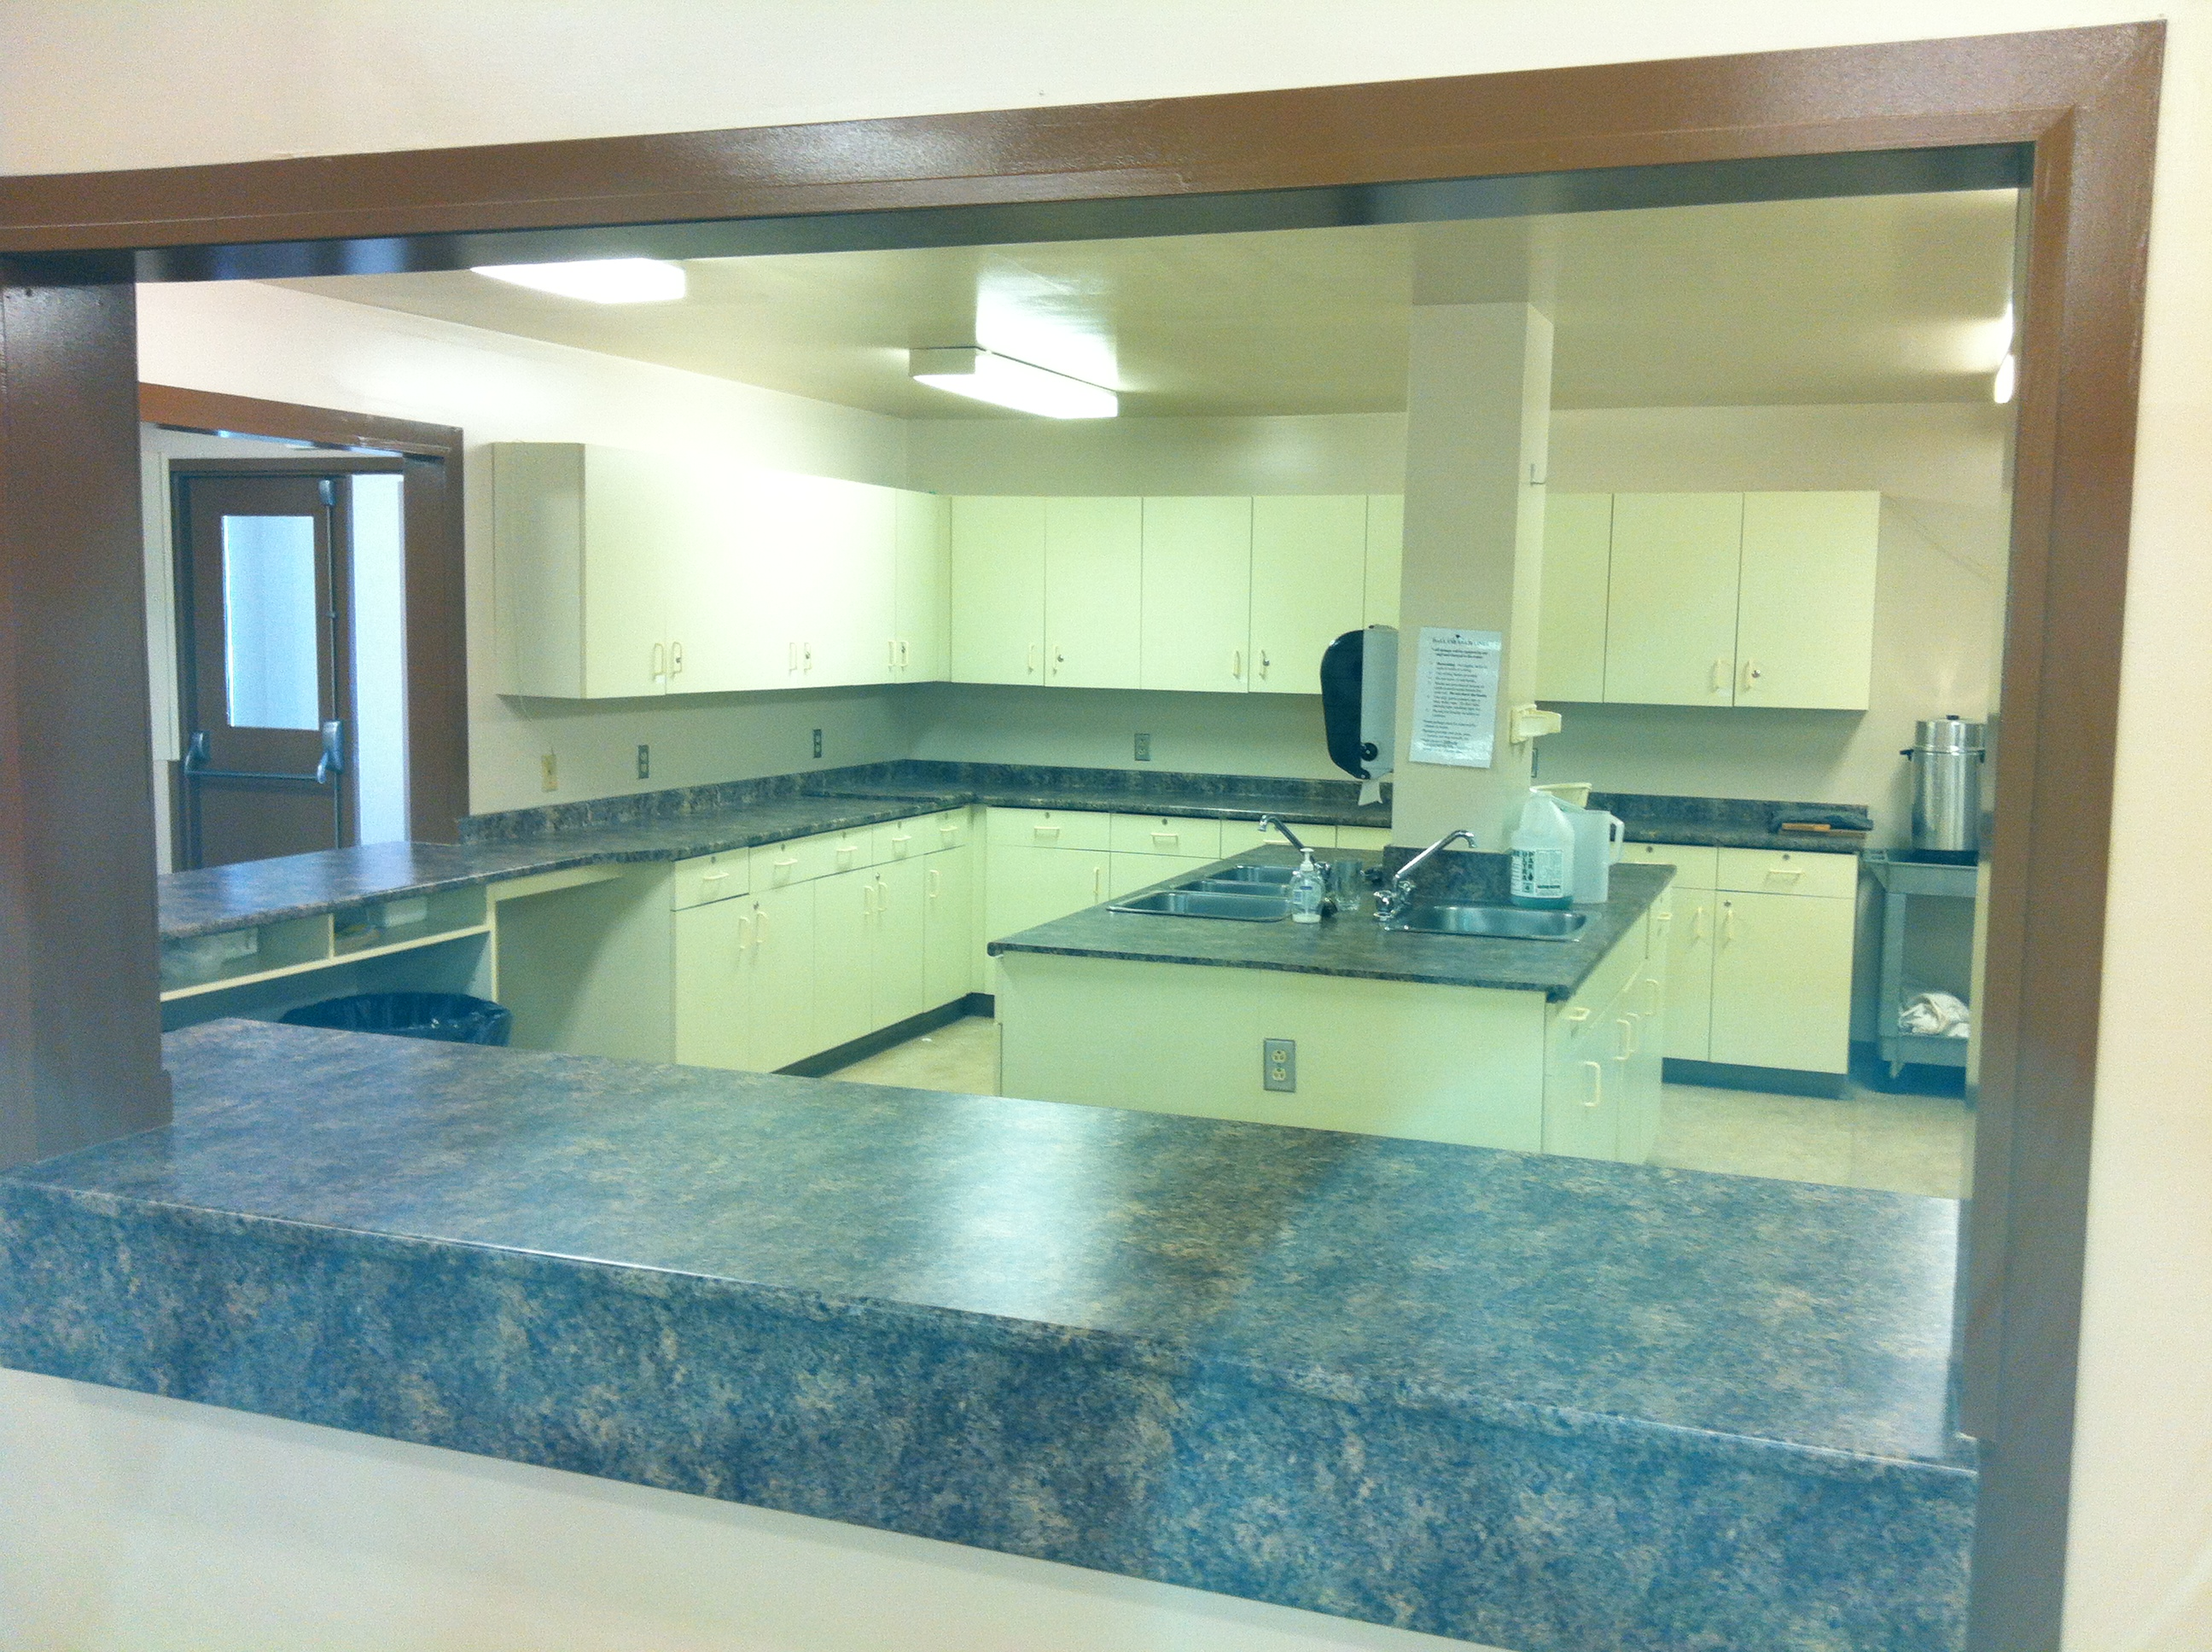 Nordale Hall new kitchen counters 1.JPG